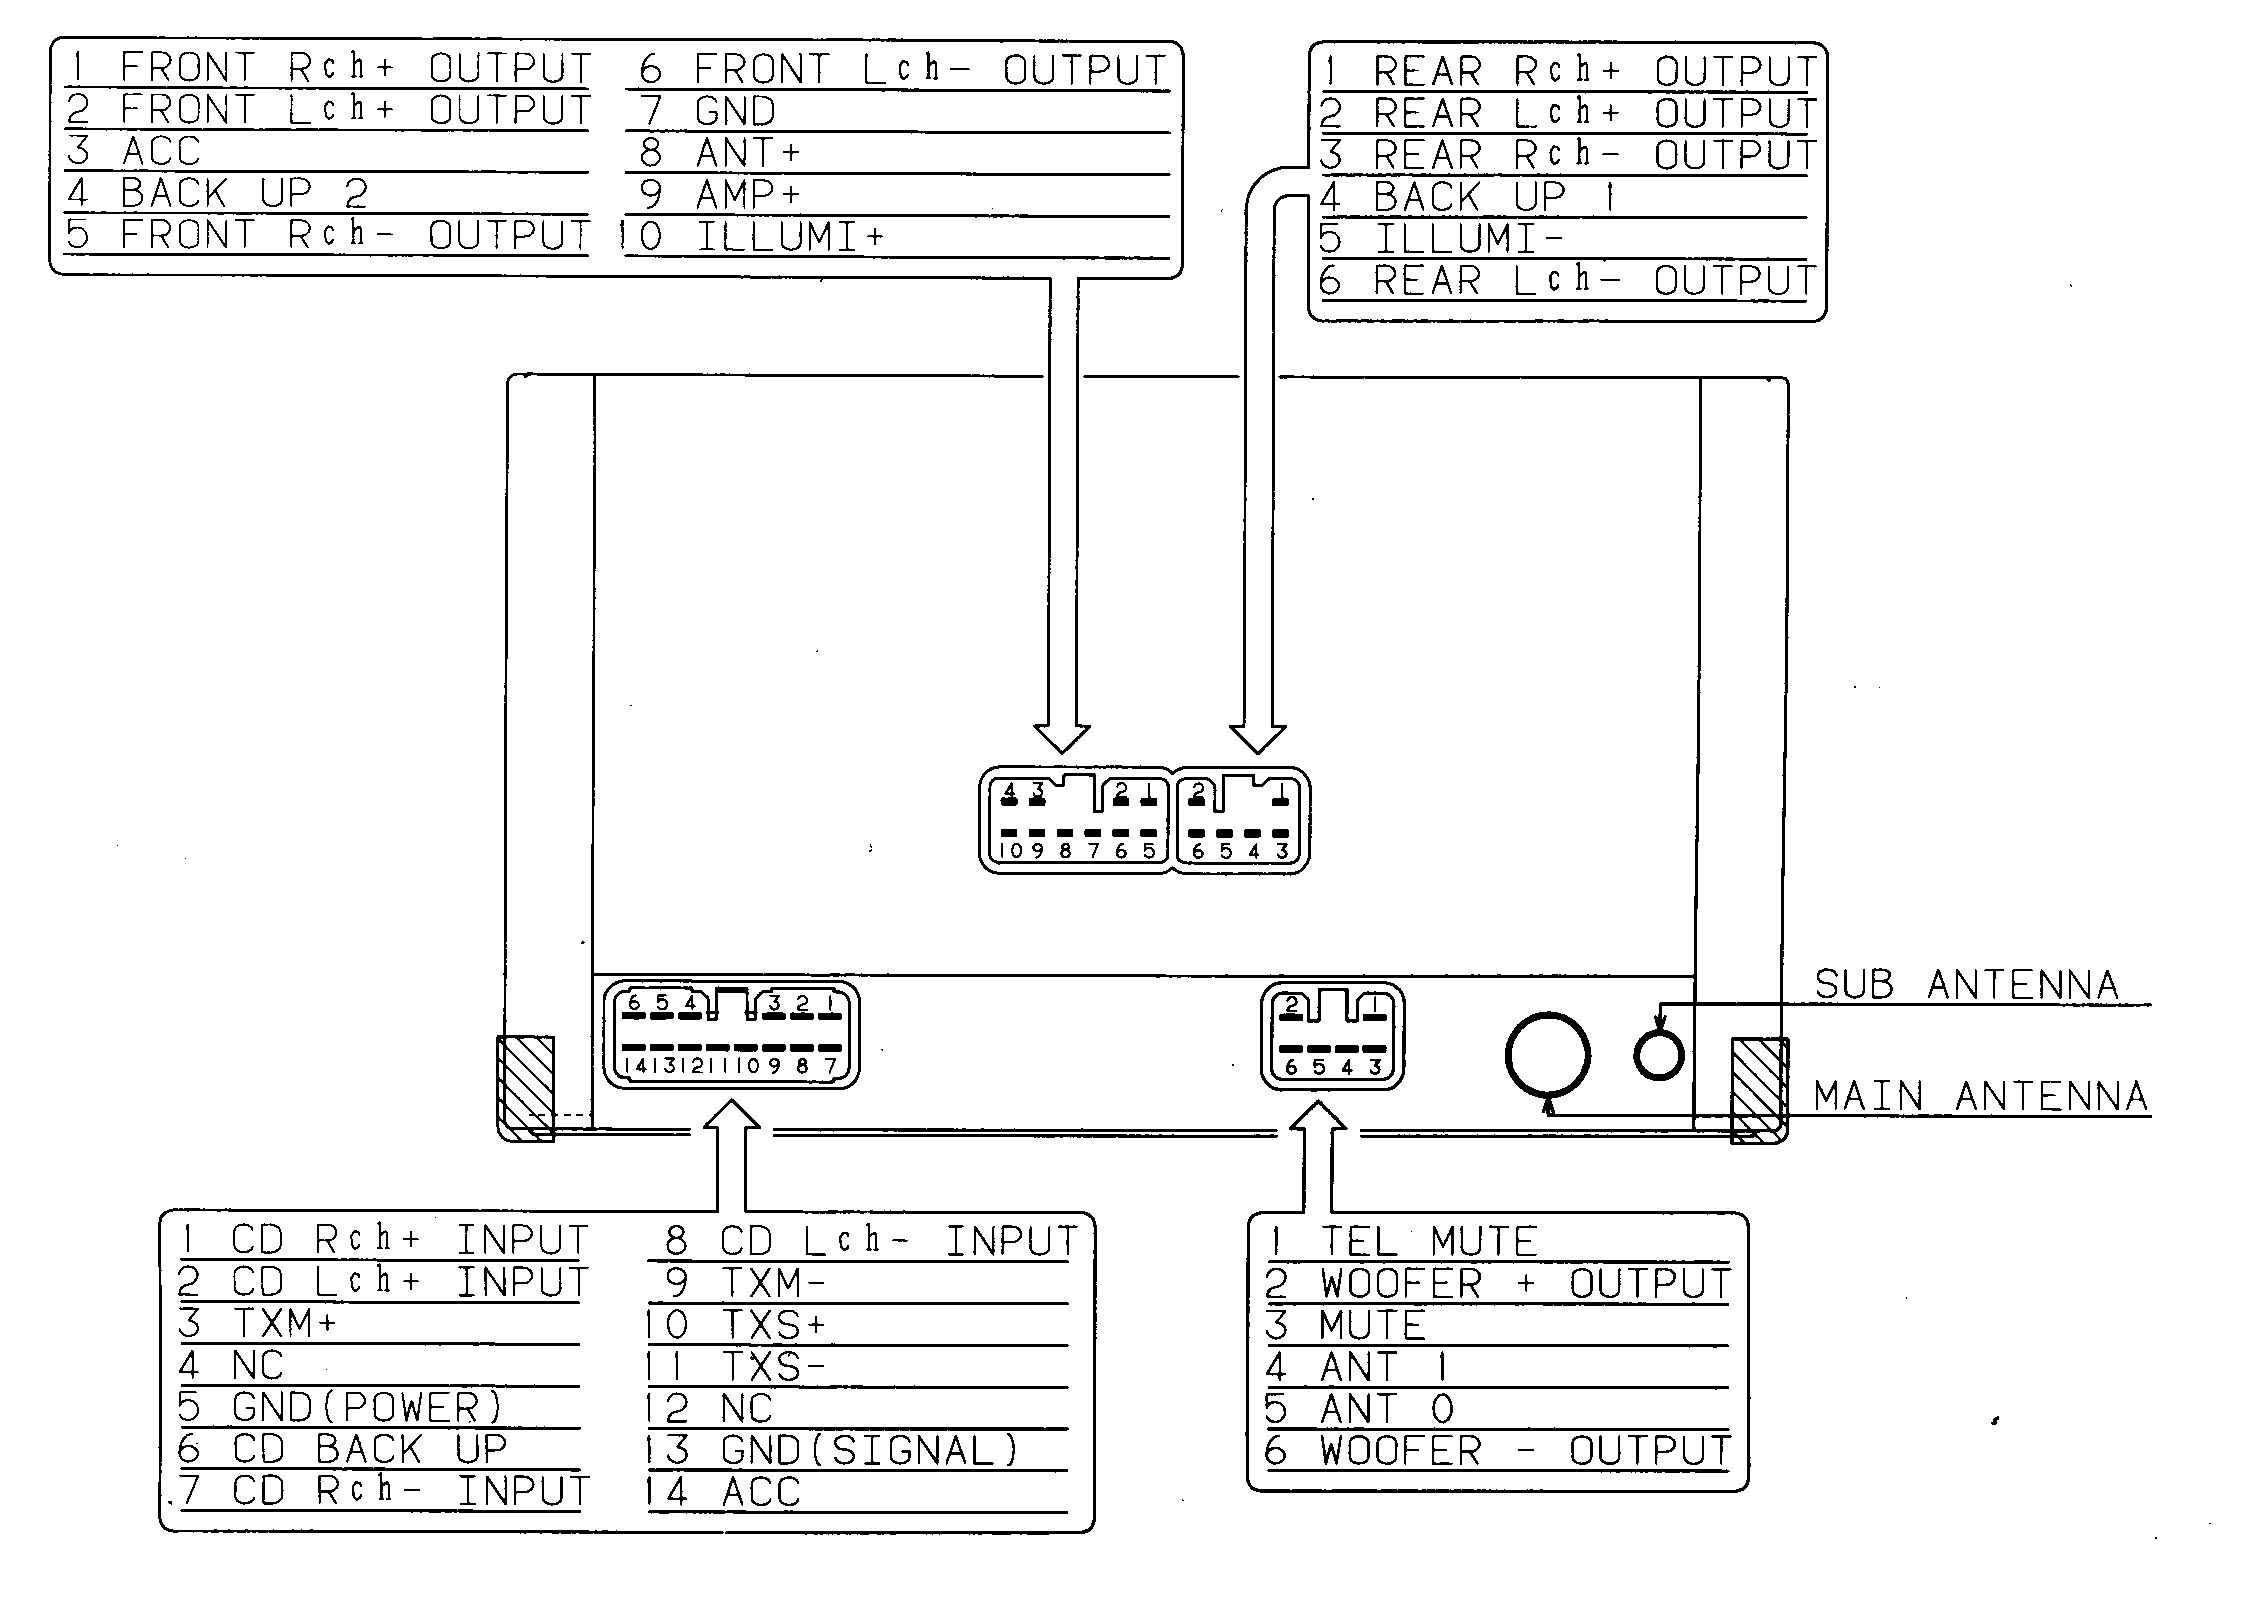 Wiring Diagram For Lexus Rx300 Library Obsidian Audio Opinions About U2022 Rh Voterid Co 2000 Stereo